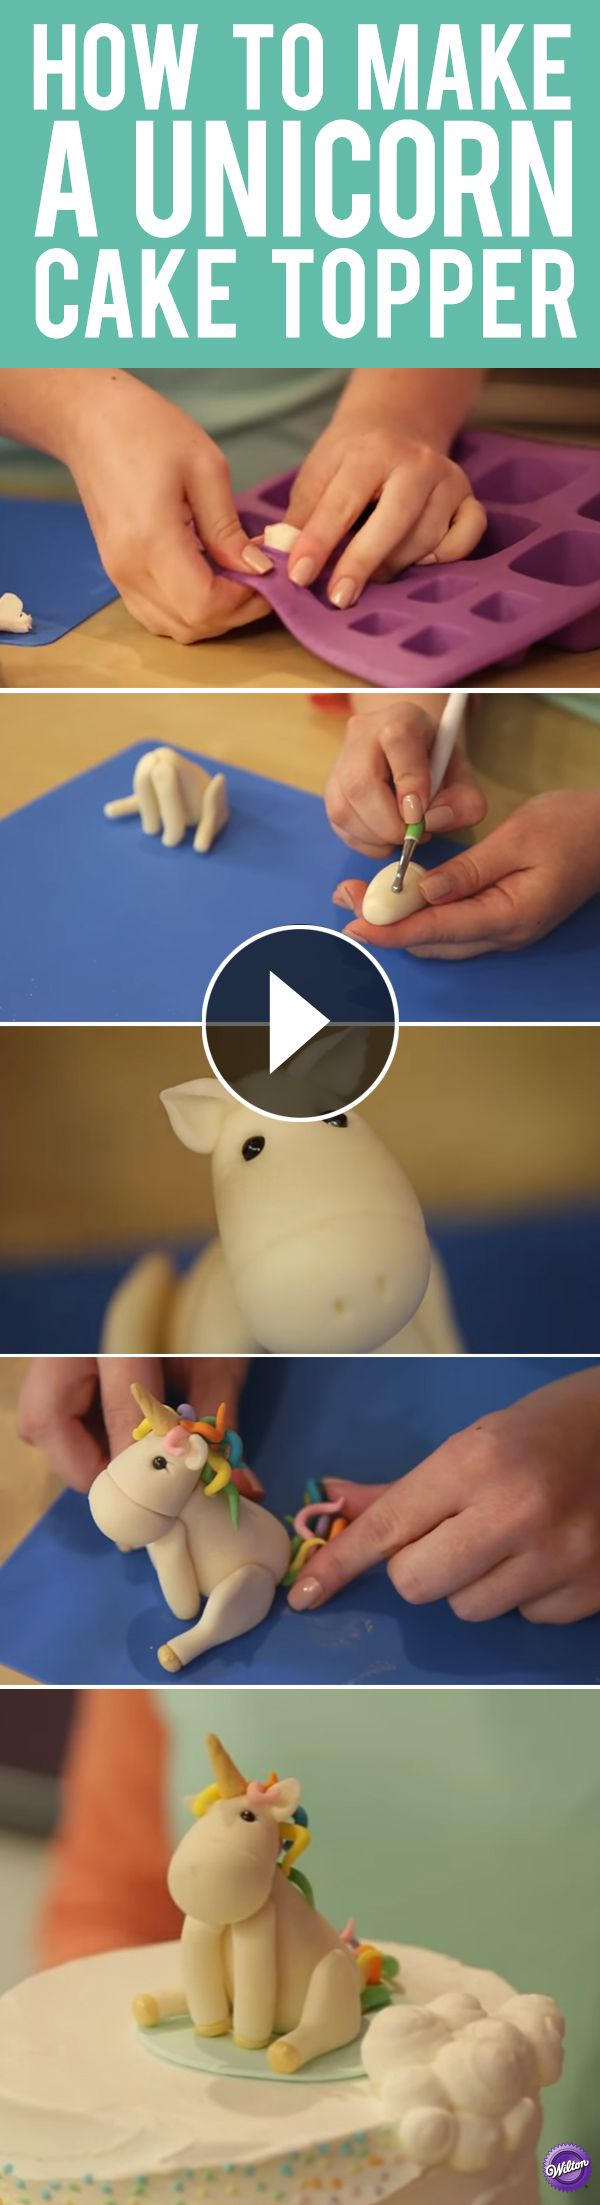 How to Make a Unicorn Cake Topper - Unicorn figurine made of Wilton Shape-N-Amaze Edible Dough is an adorable topper for your next party cake. In this video, we will show you step-by-step instructions on how to make your own unicorn figurine.